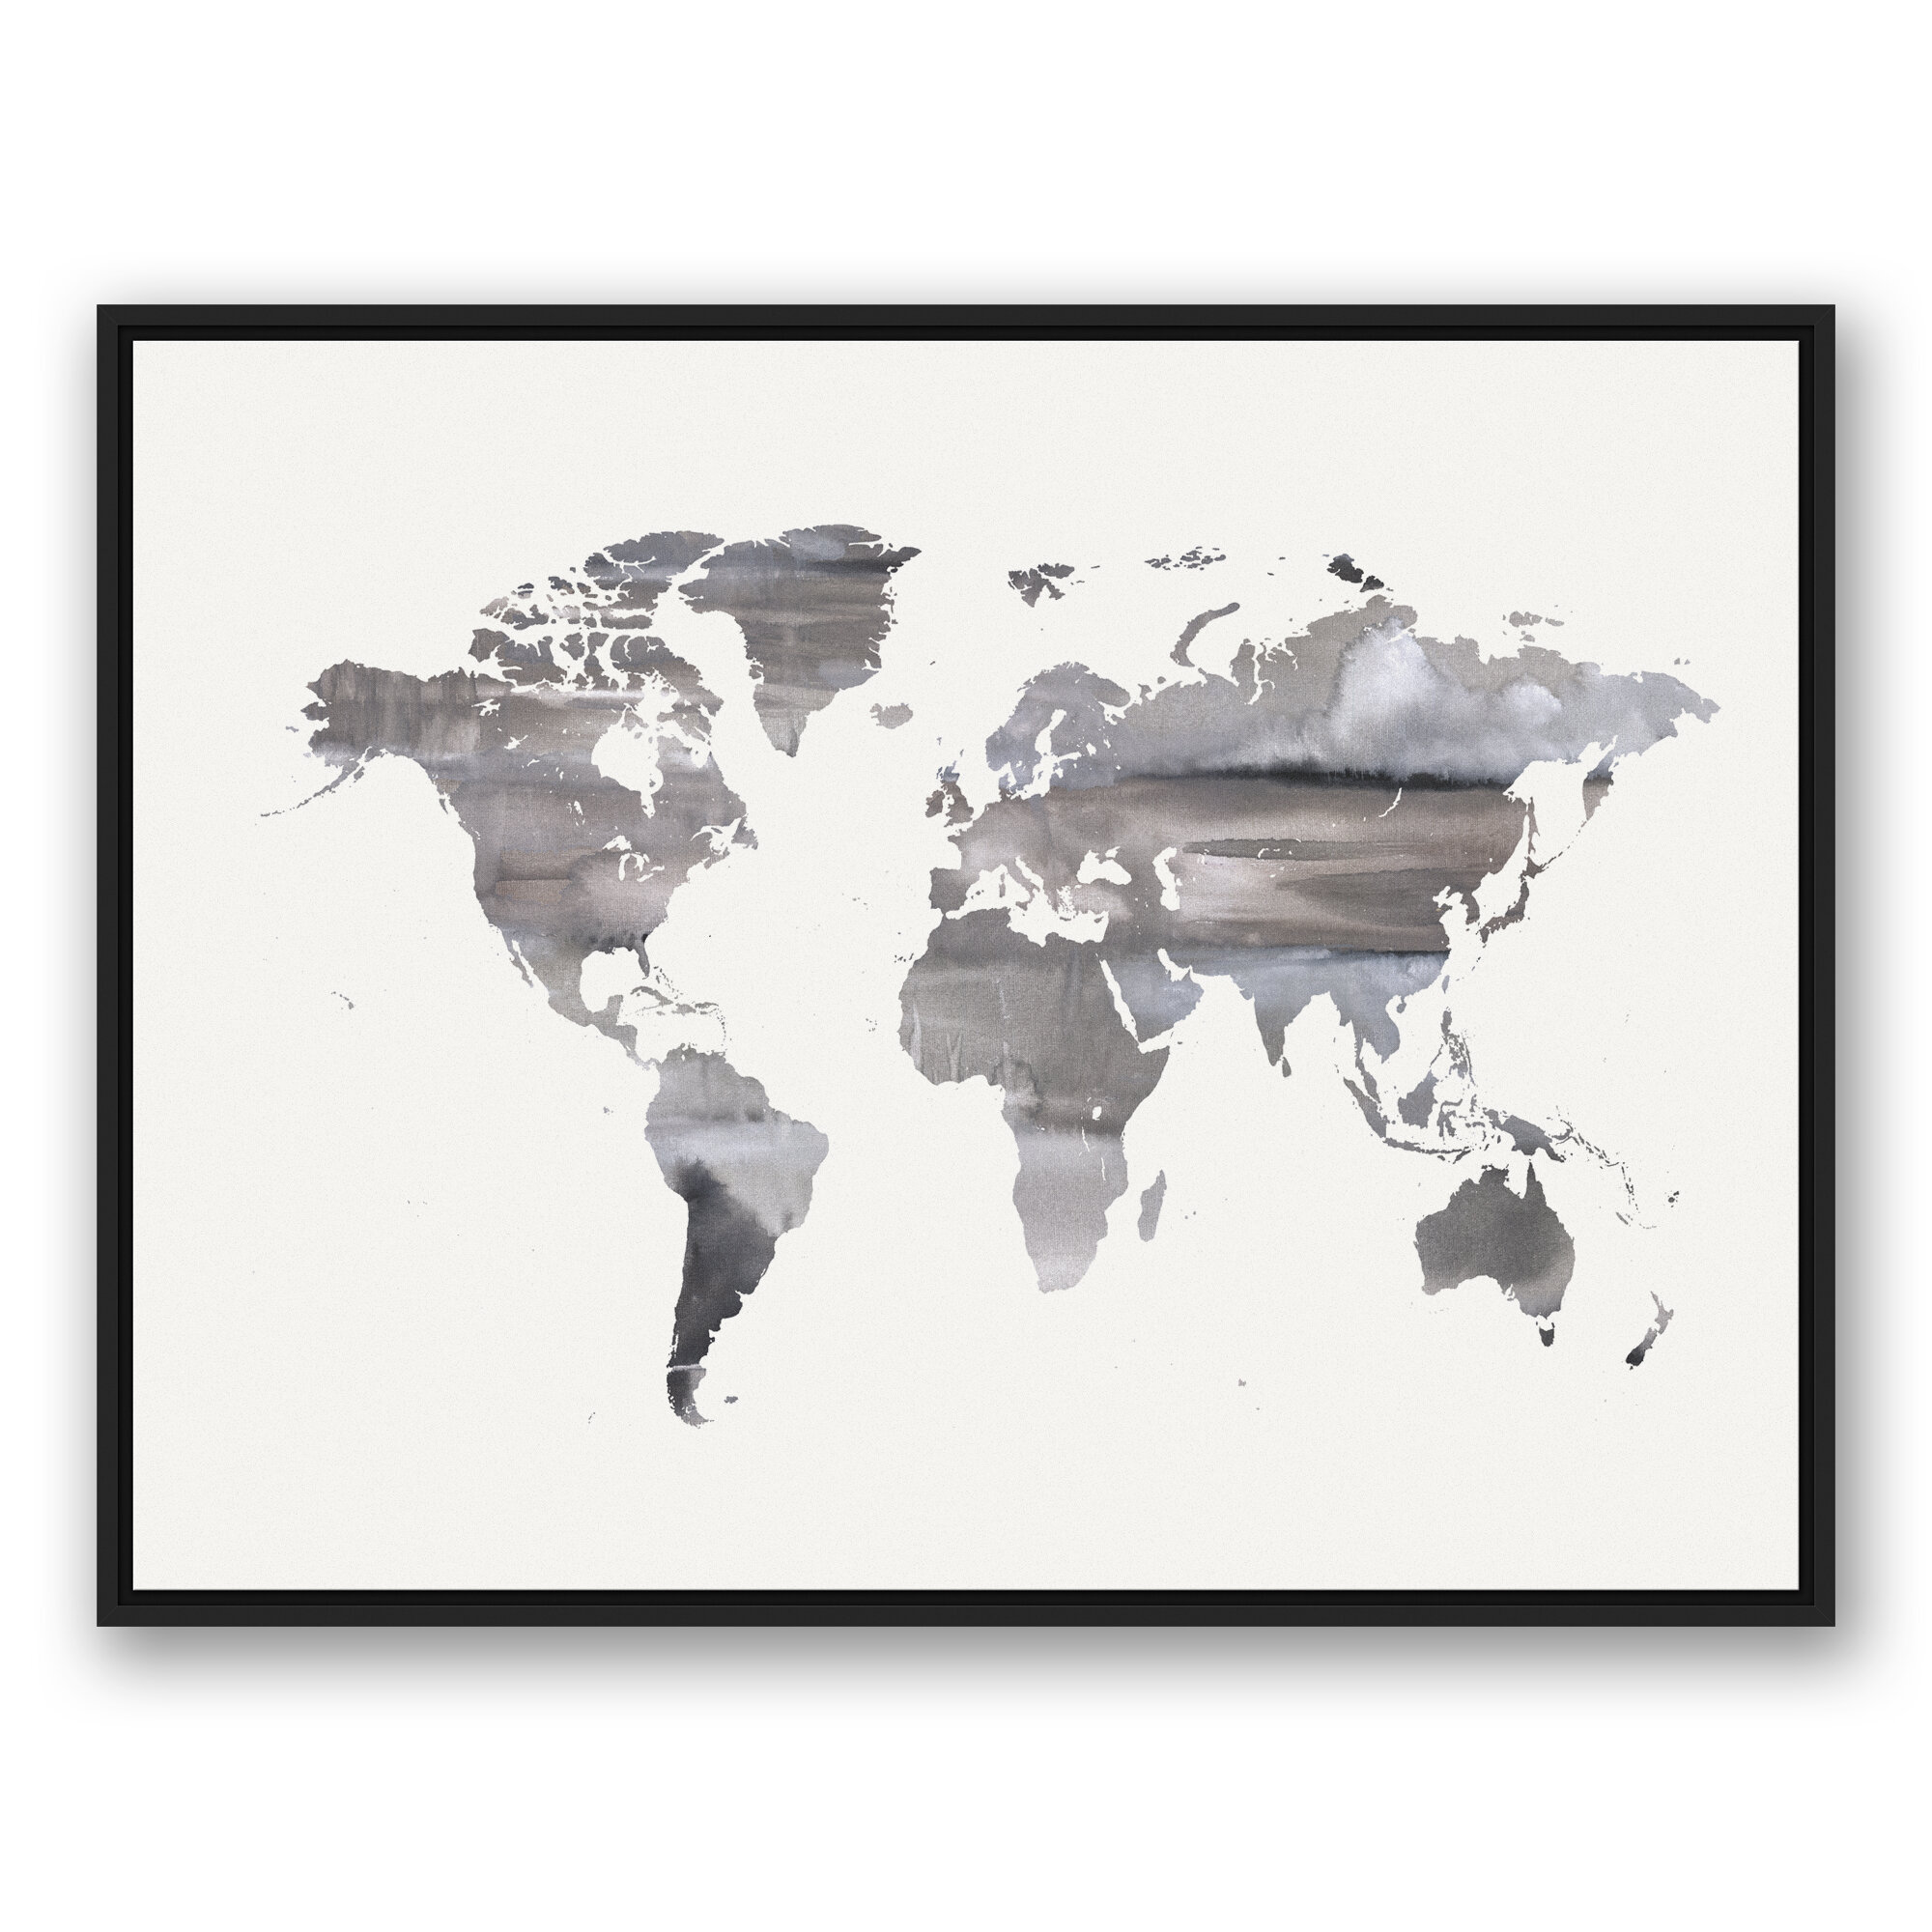 Brayden studio white world map framed watercolor painting print on canvas wayfair brayden studio white world map framed watercolor painting print on canvas wayfair gumiabroncs Choice Image